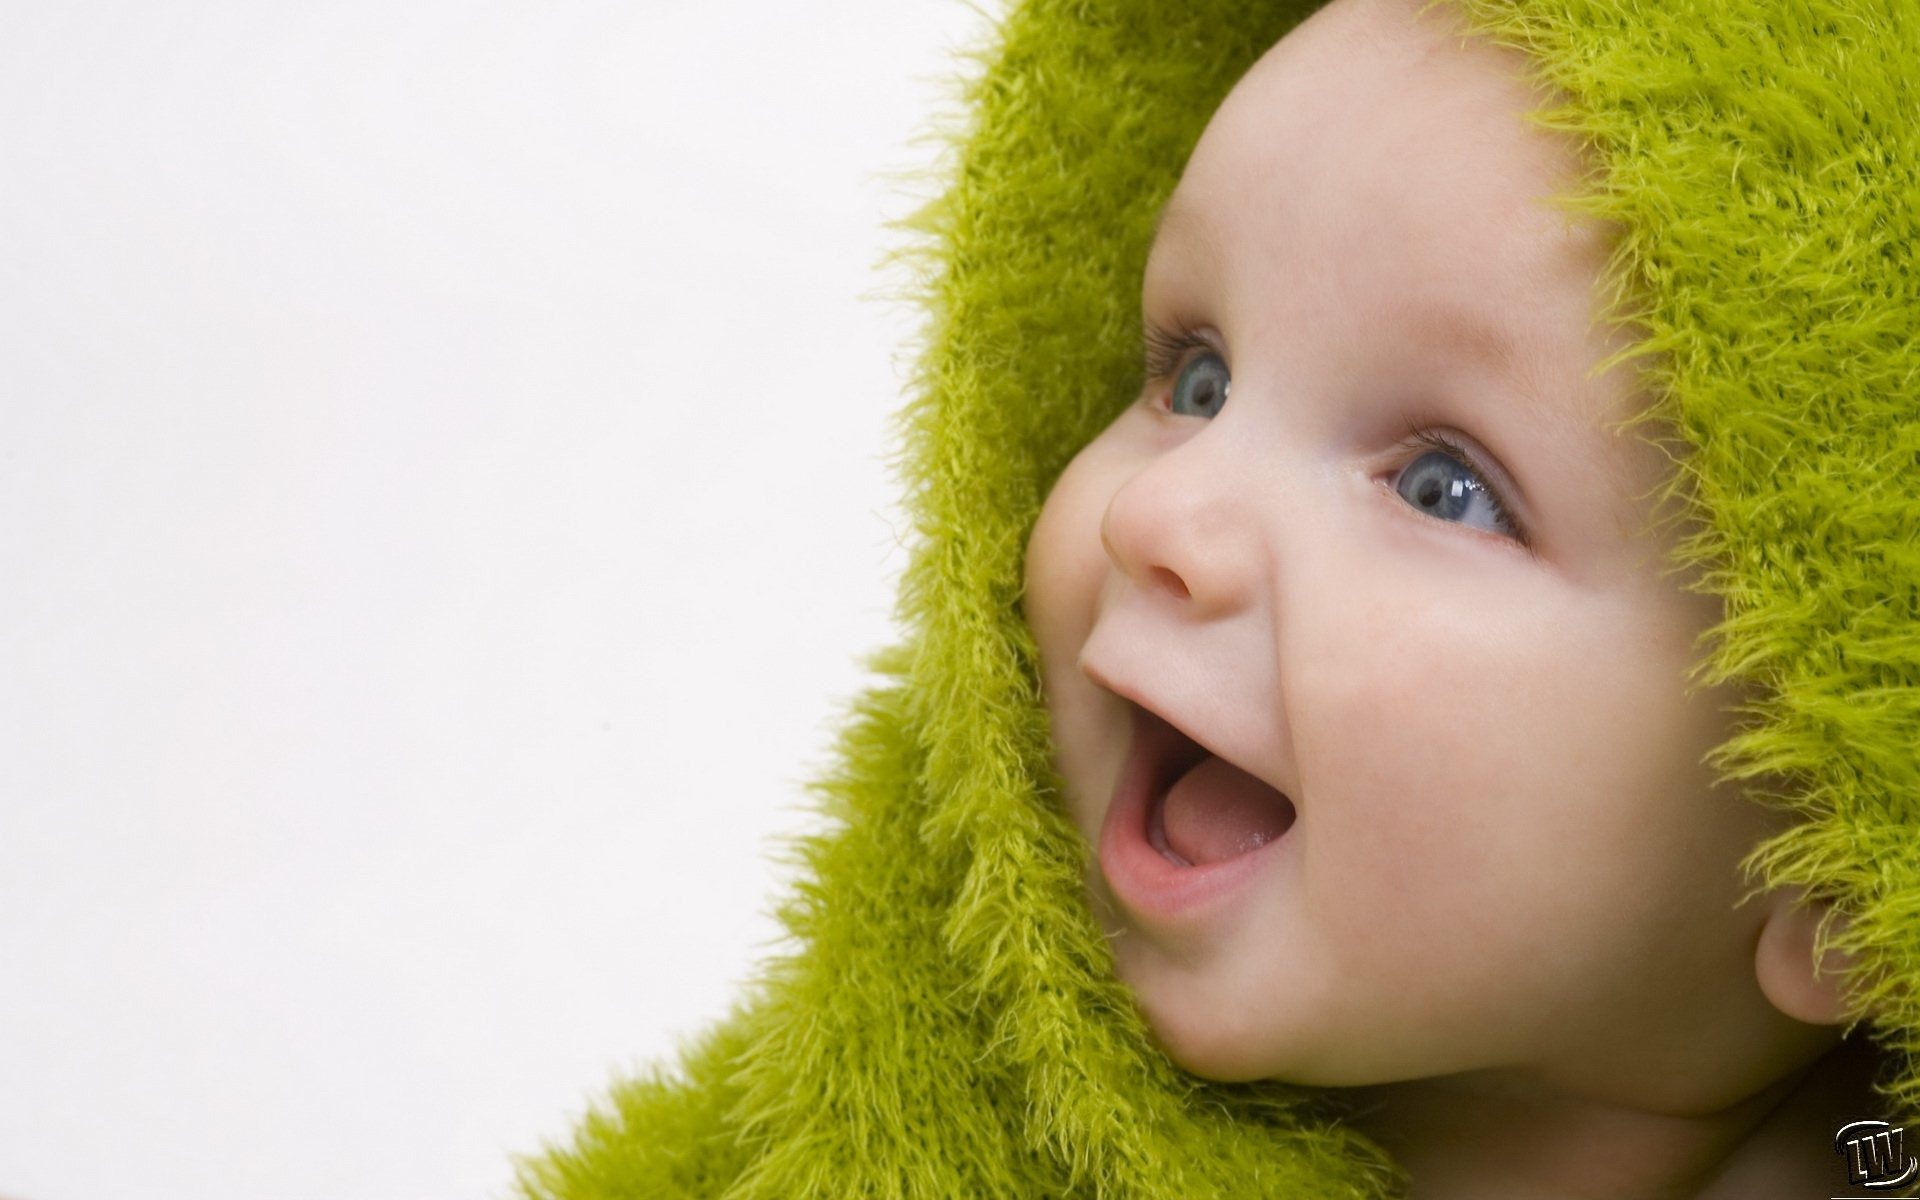 1920x1080 Cute Baby Wallpaper For Facebook